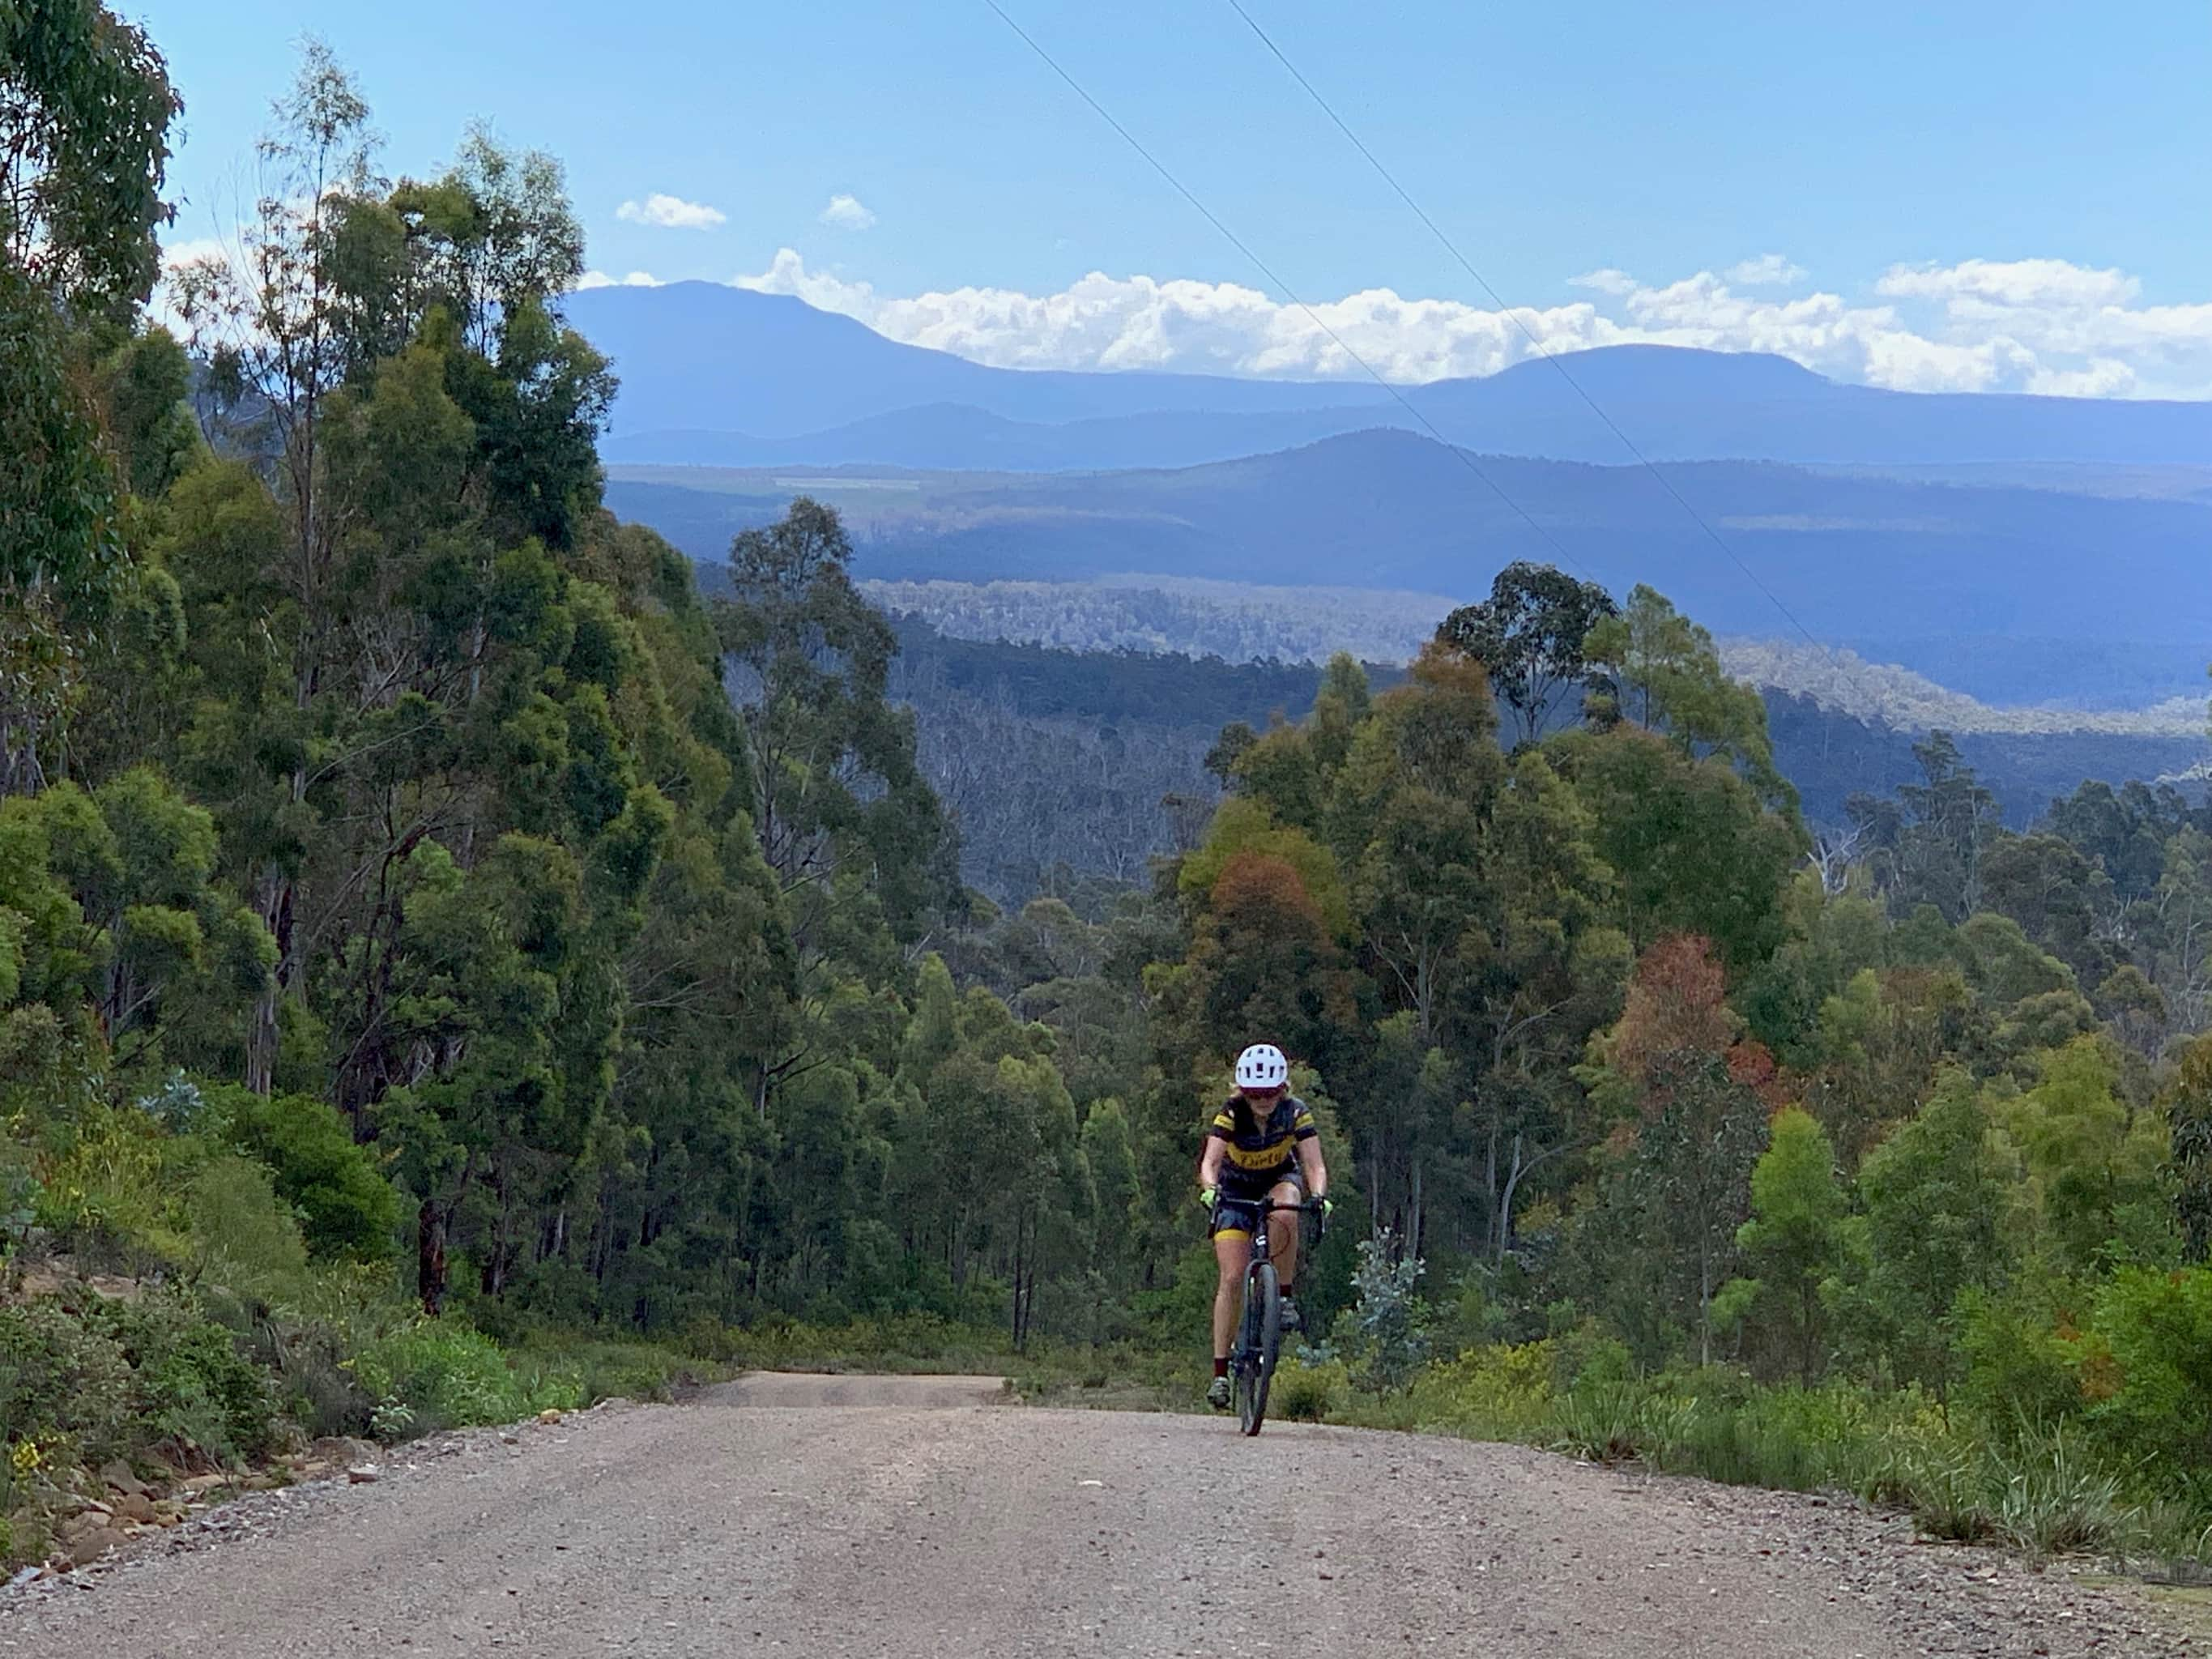 Bike rider on steep section of grave road with views far into the distance.